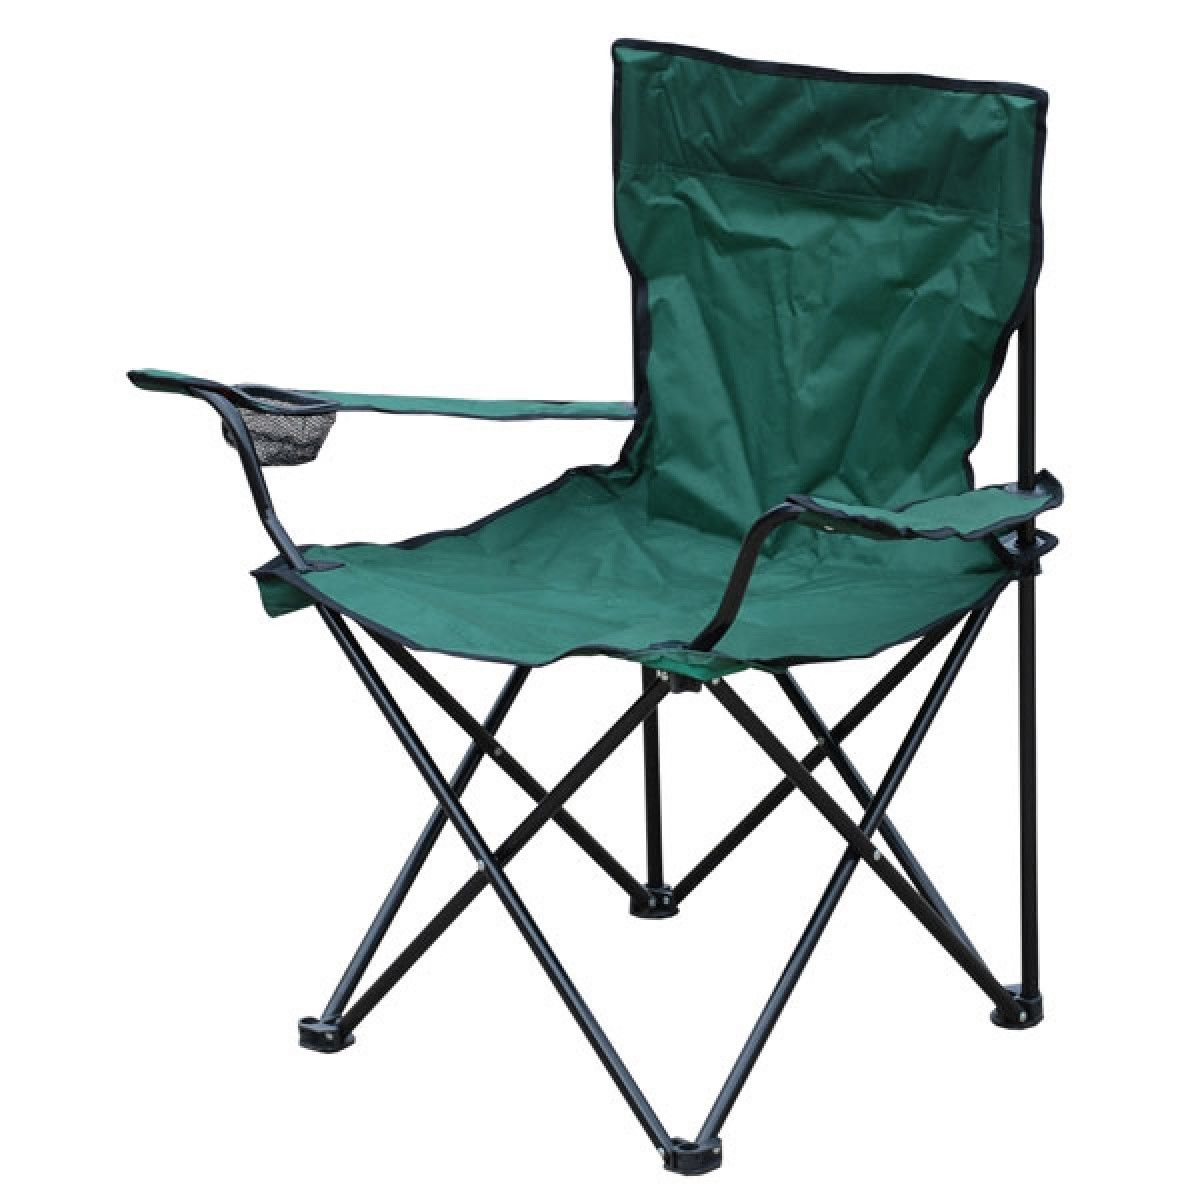 Camping Folding Chairs Brand New Lightweight Portable Outdoor Camping Garden